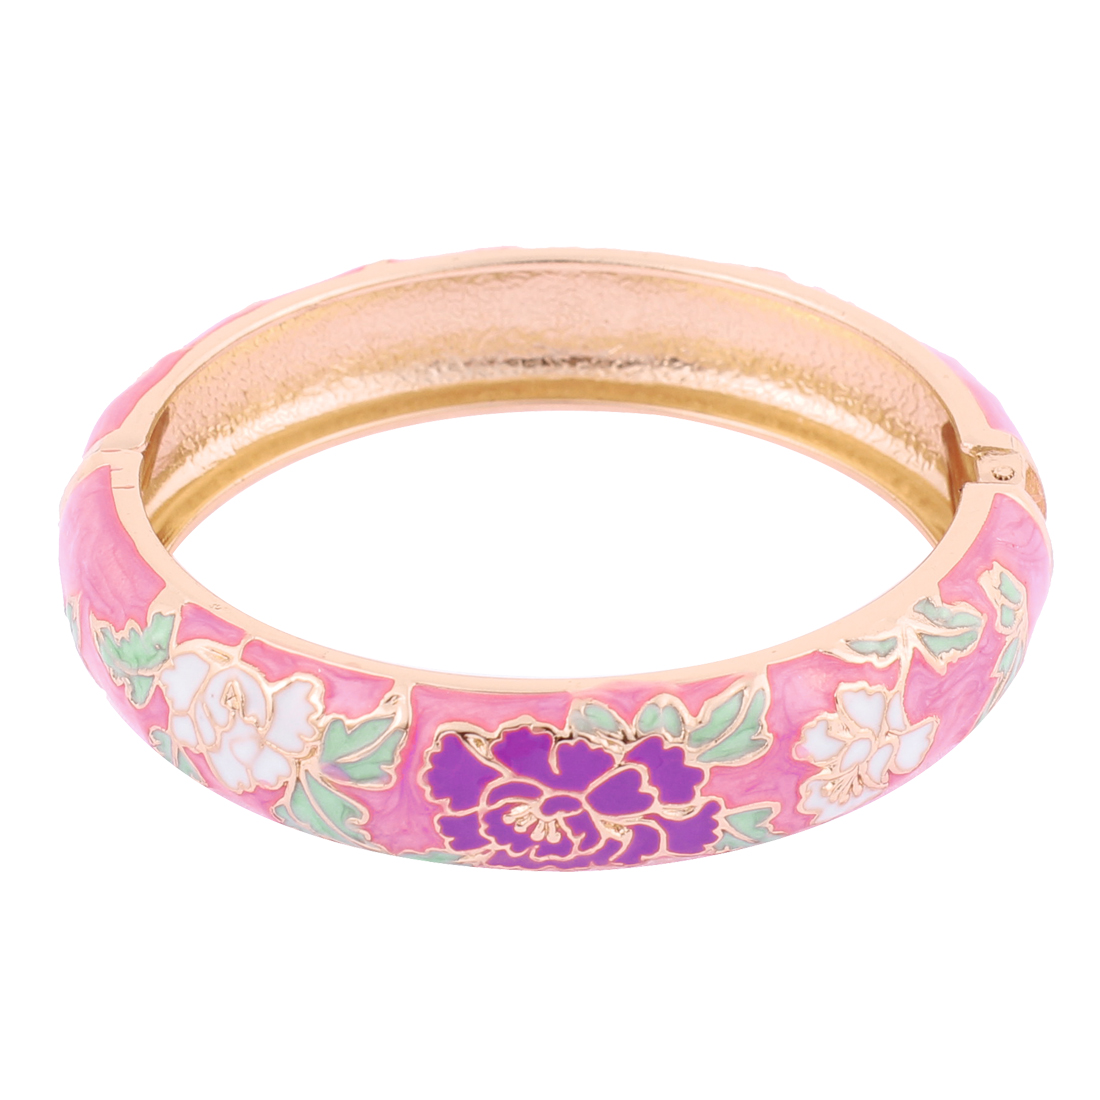 Women Flower Spring Hinge Cuff Enamel Hinged Bangle Bracelet Gift Pink